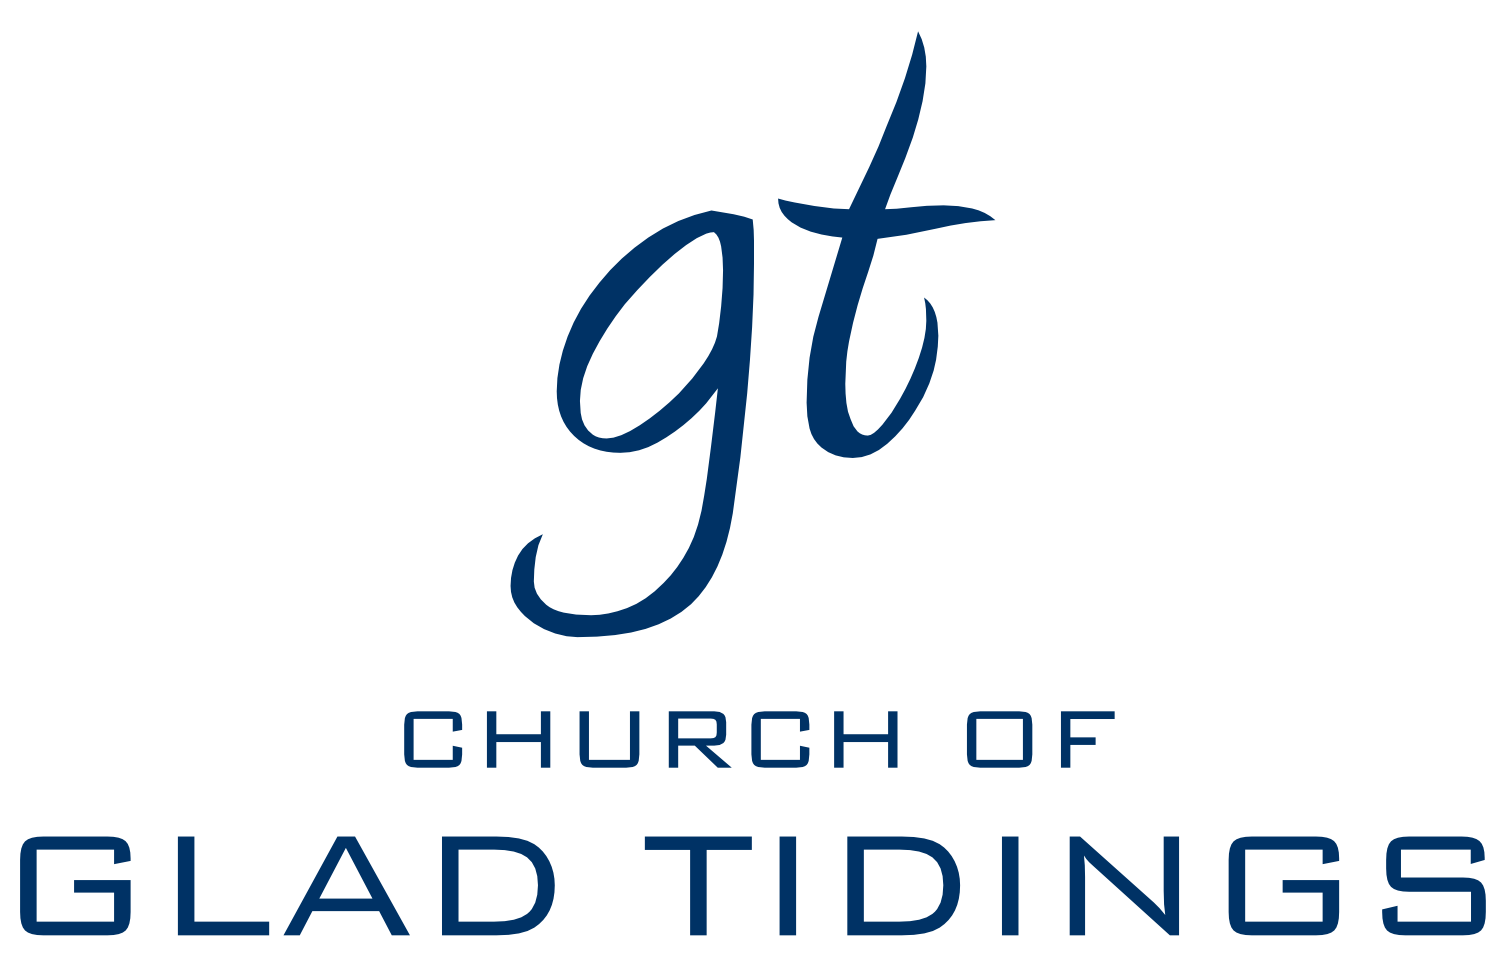 Church of Glad Tidings